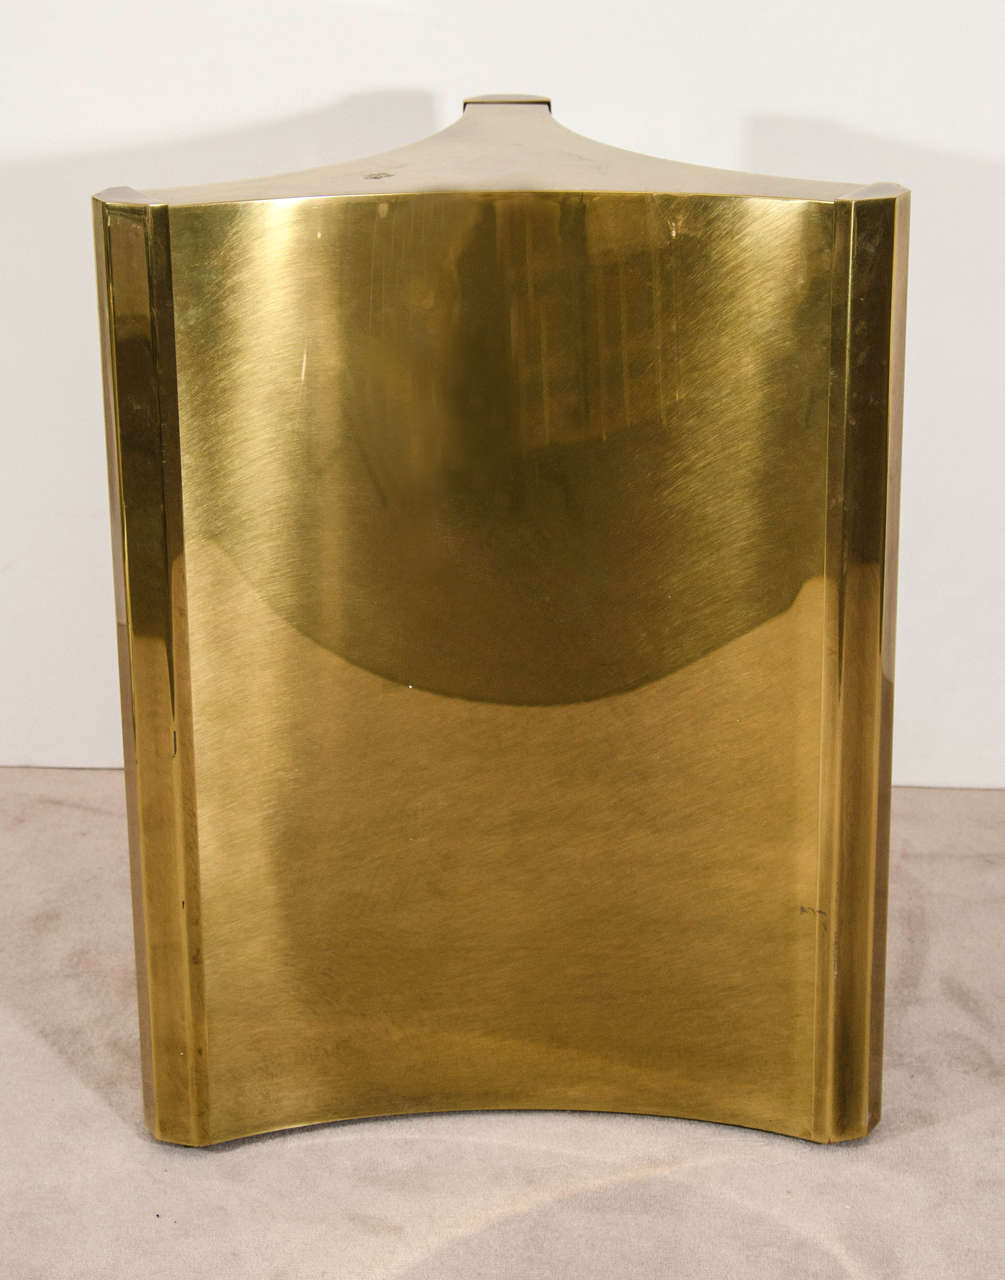 Mastercraft brass dining table - Midcentury Pair Of Brass Triangulate Dining Table Bases By Mastercraft 2